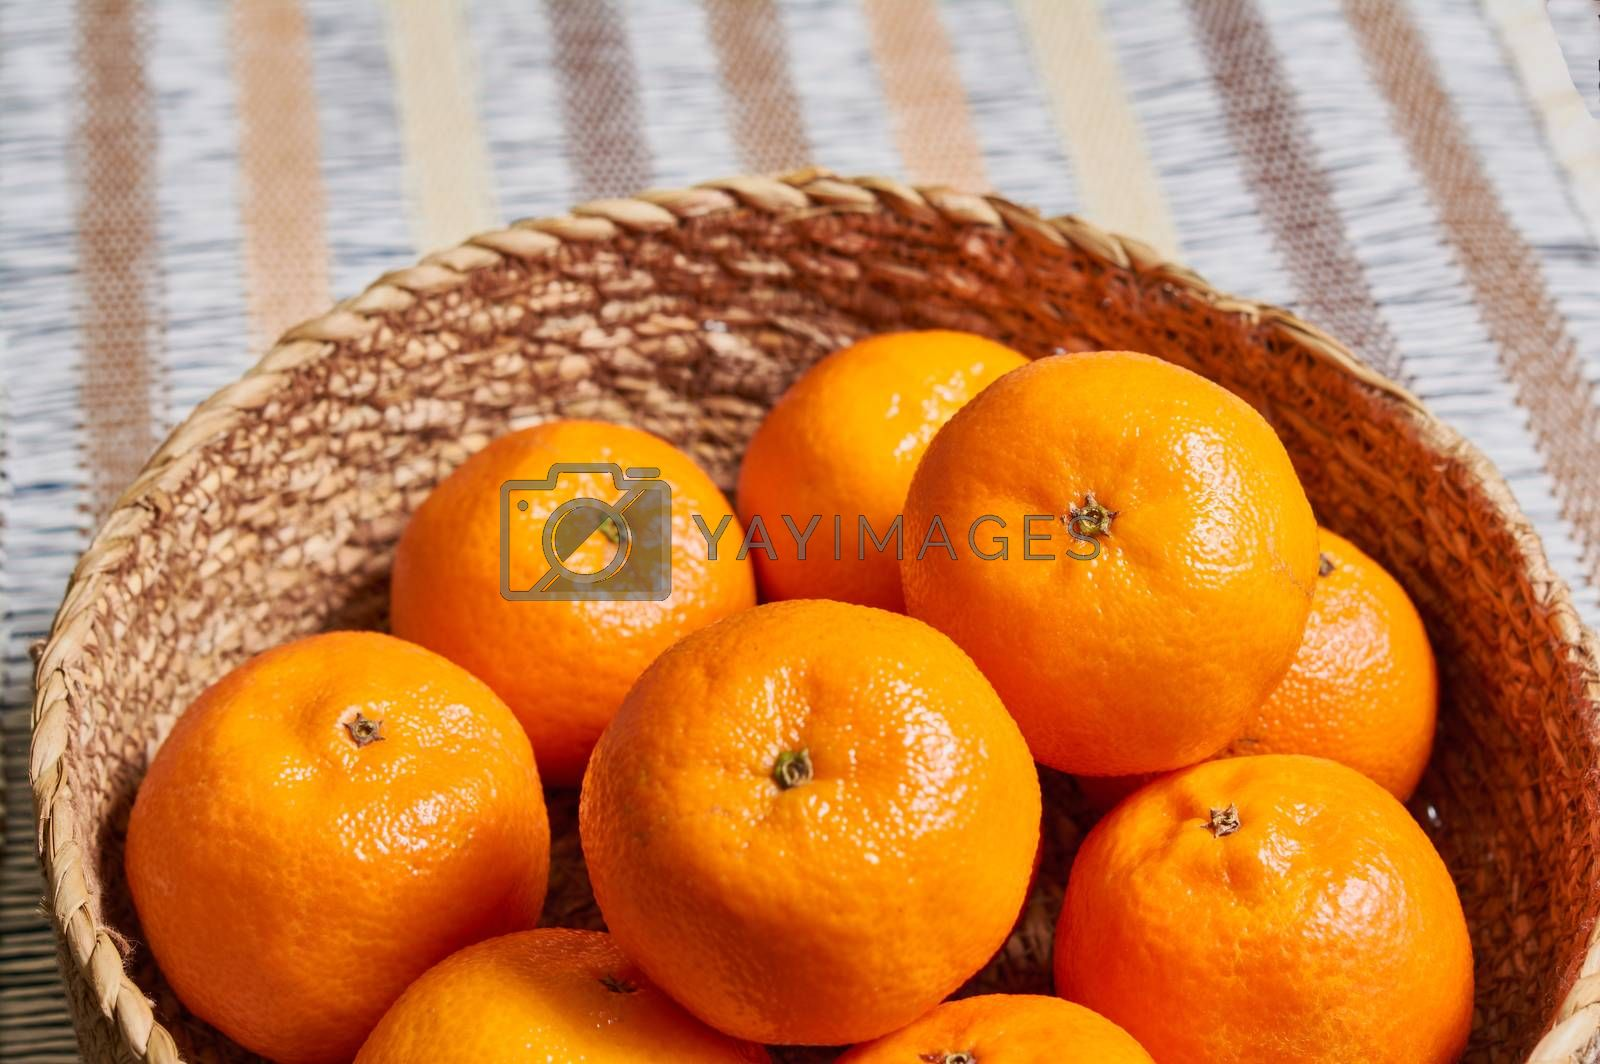 Royalty free image of tangerine basket with artisan tablecloth background by Prf_photo